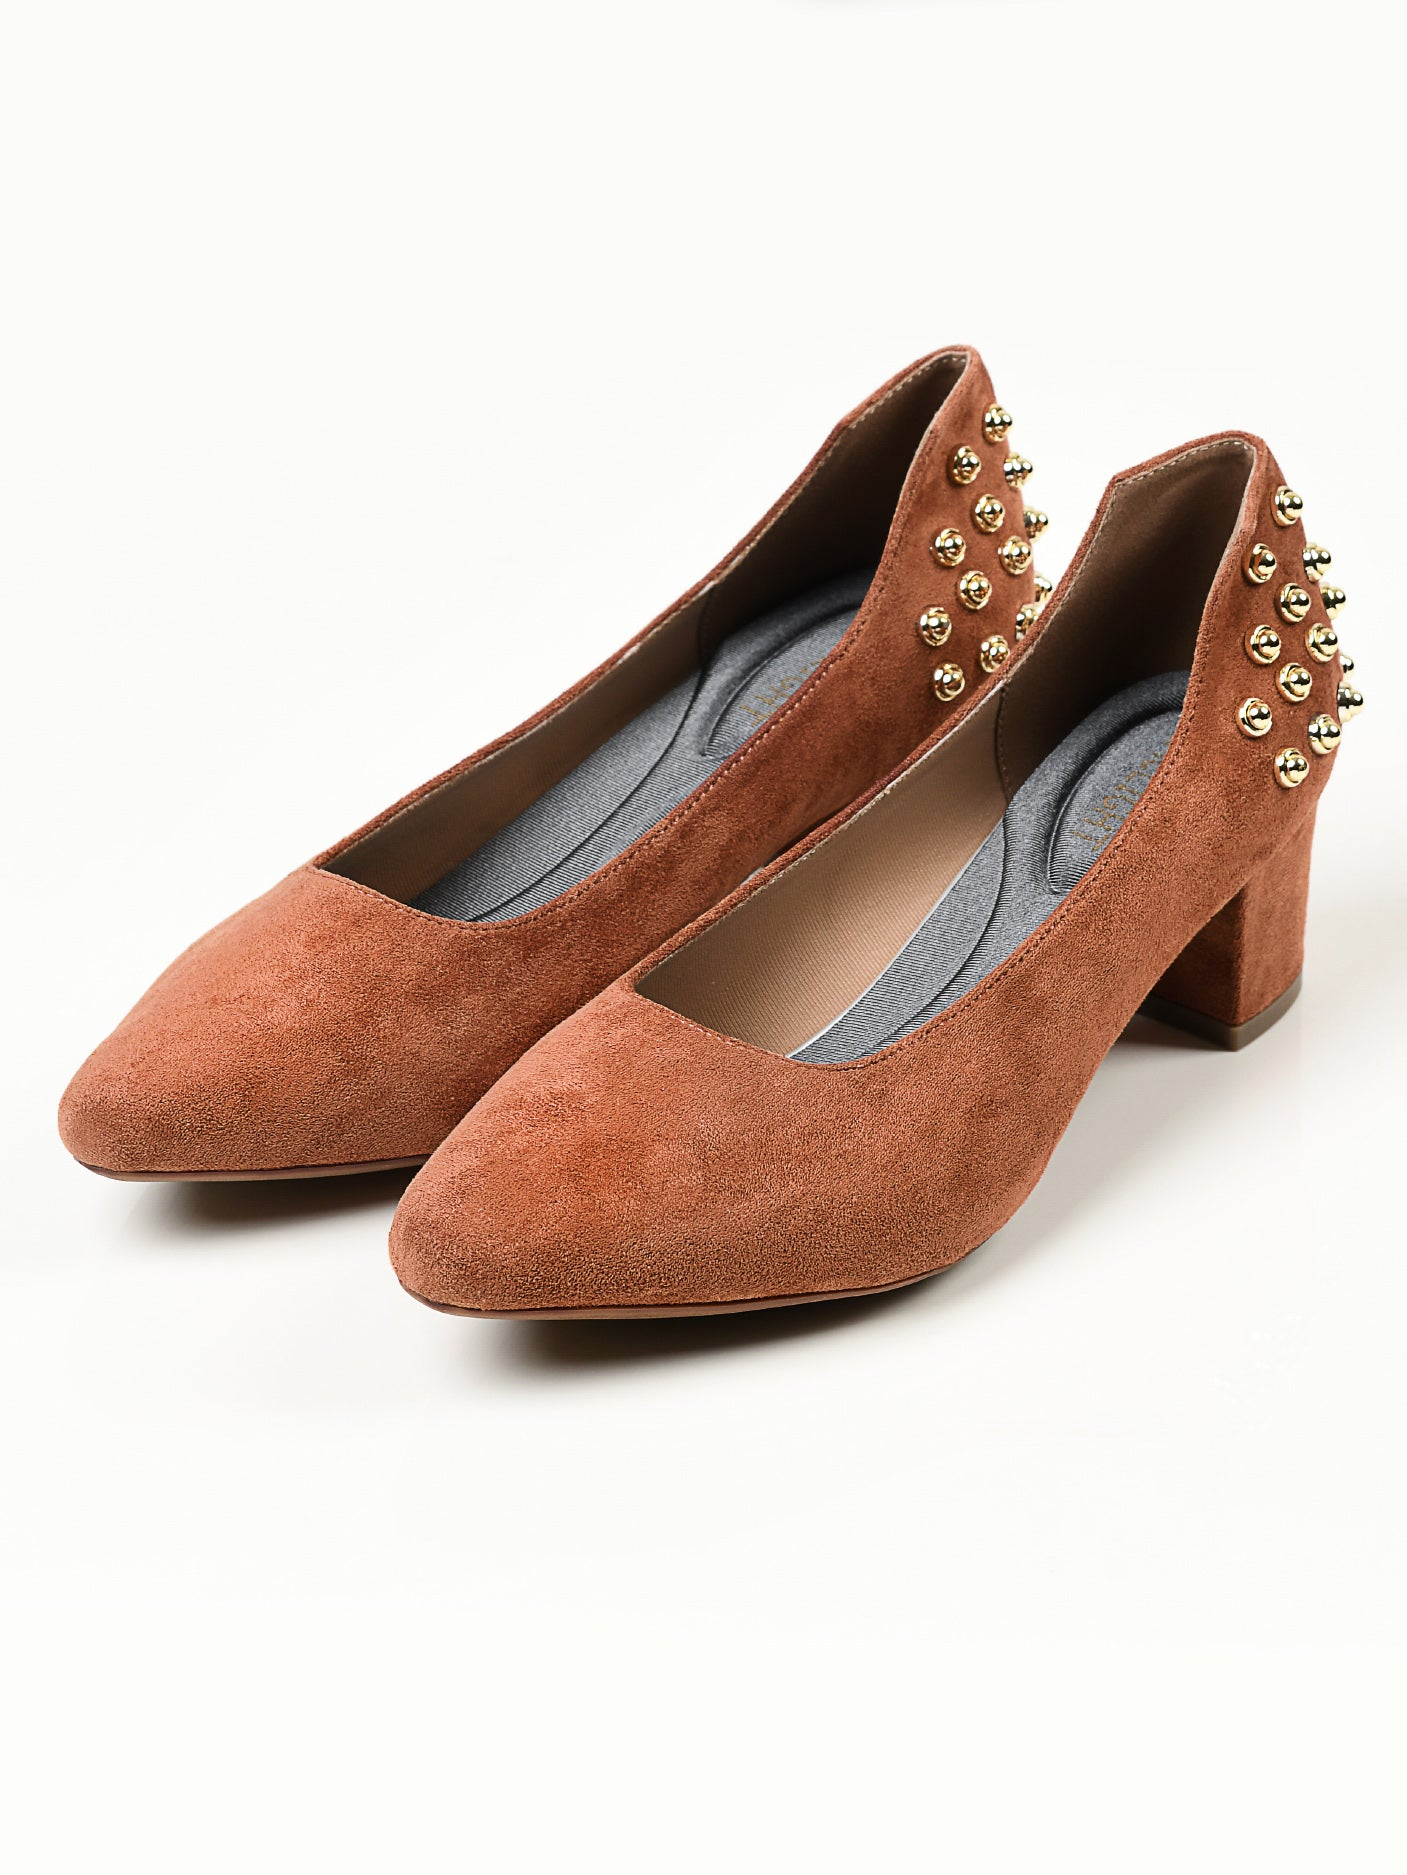 Studded Suede Heels - Brown